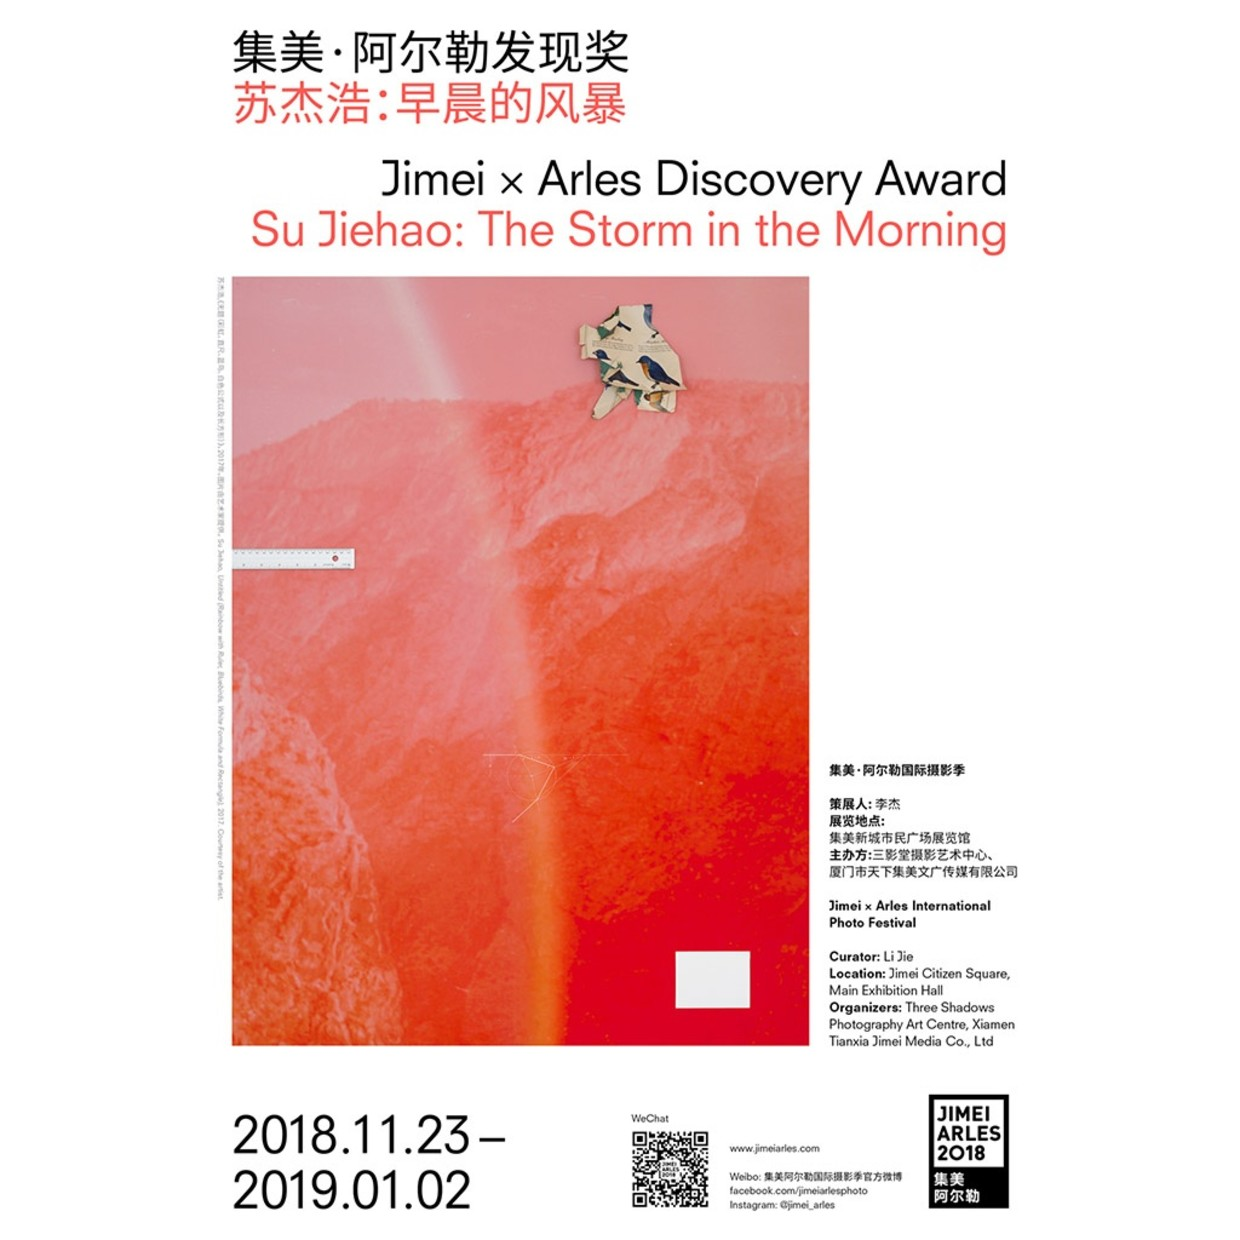 SU JIEHAO THE STORM IN THE MORNING CURATED BY LI JIE Similar to other youngsters in China, the environment in...